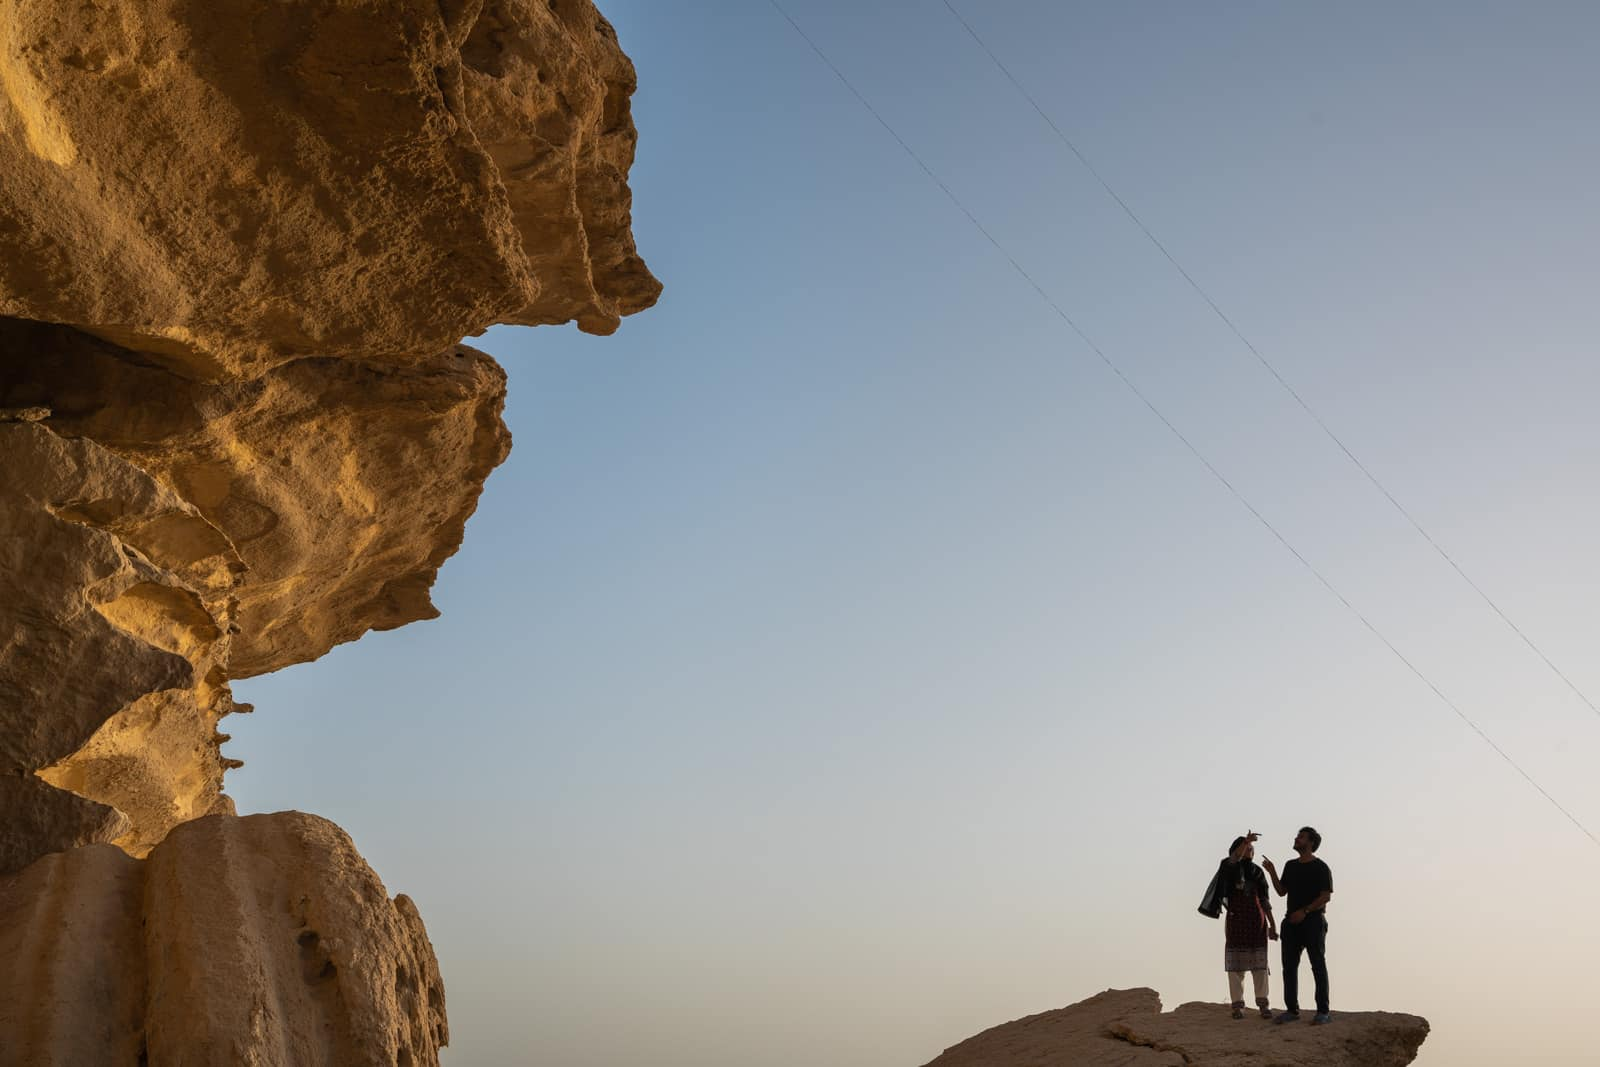 Sindh travel guide - Two people on a rock in Sindh, Pakistan - Lost With Purpose travel blog